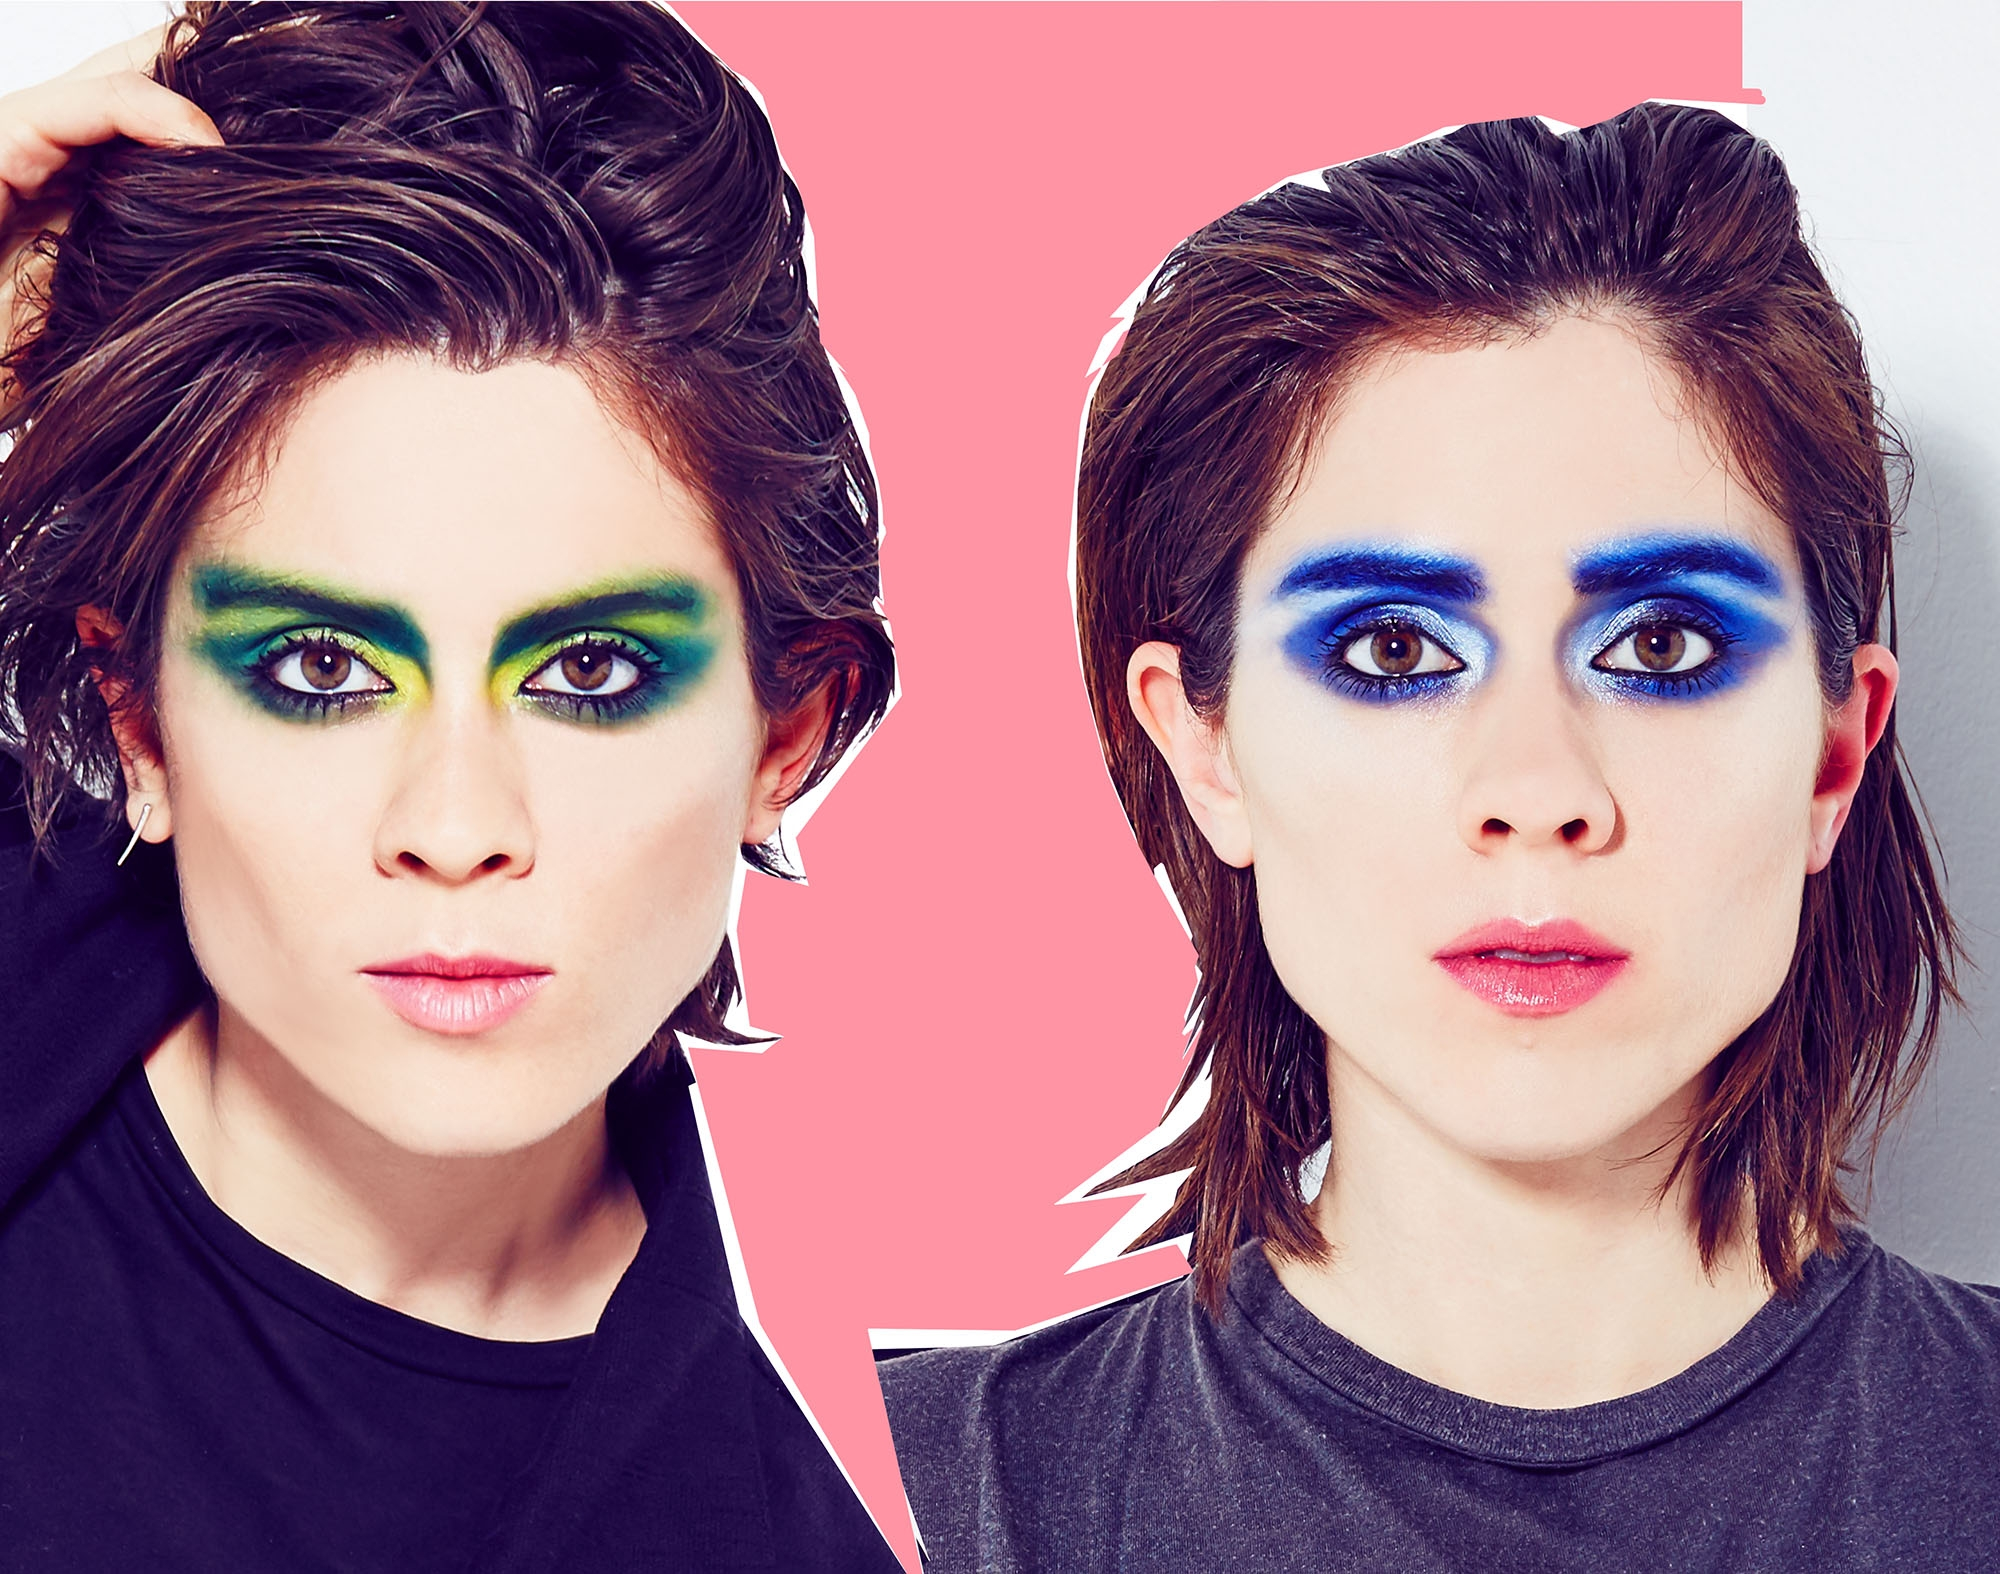 X Welcomes Tegan and Sara!